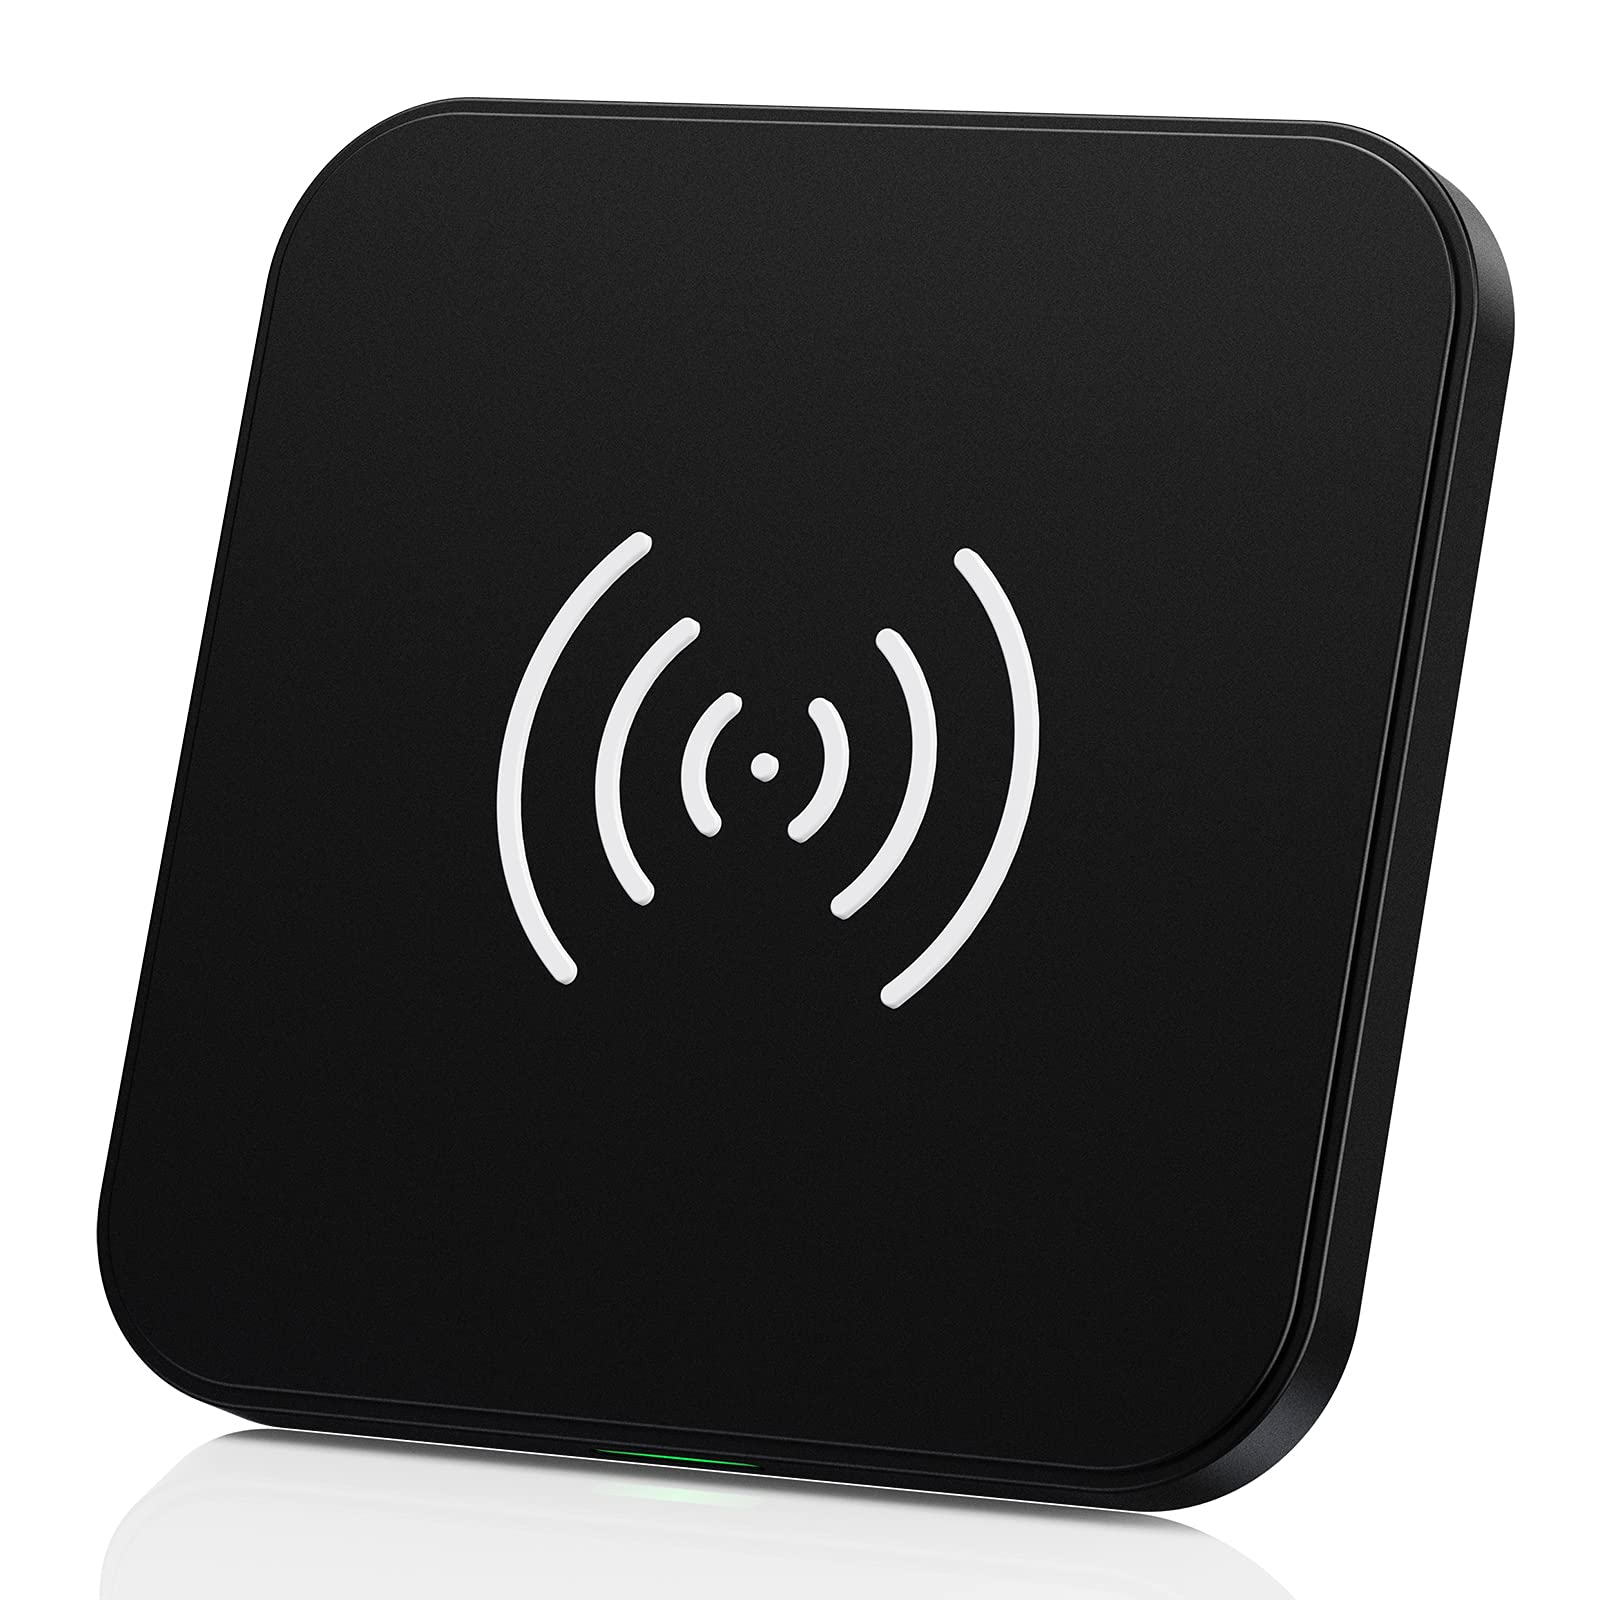 CHOETECH Wireless Charger, 10W Max Qi-Certified Fast Wireless Charging Pad Compatible with iPhone 11/11 Pro/11 Pro Max/XS Max/X, Samsung Galaxy Note 10/Note 10+/S10+/S9, AirPods Pro, black (T511-000)